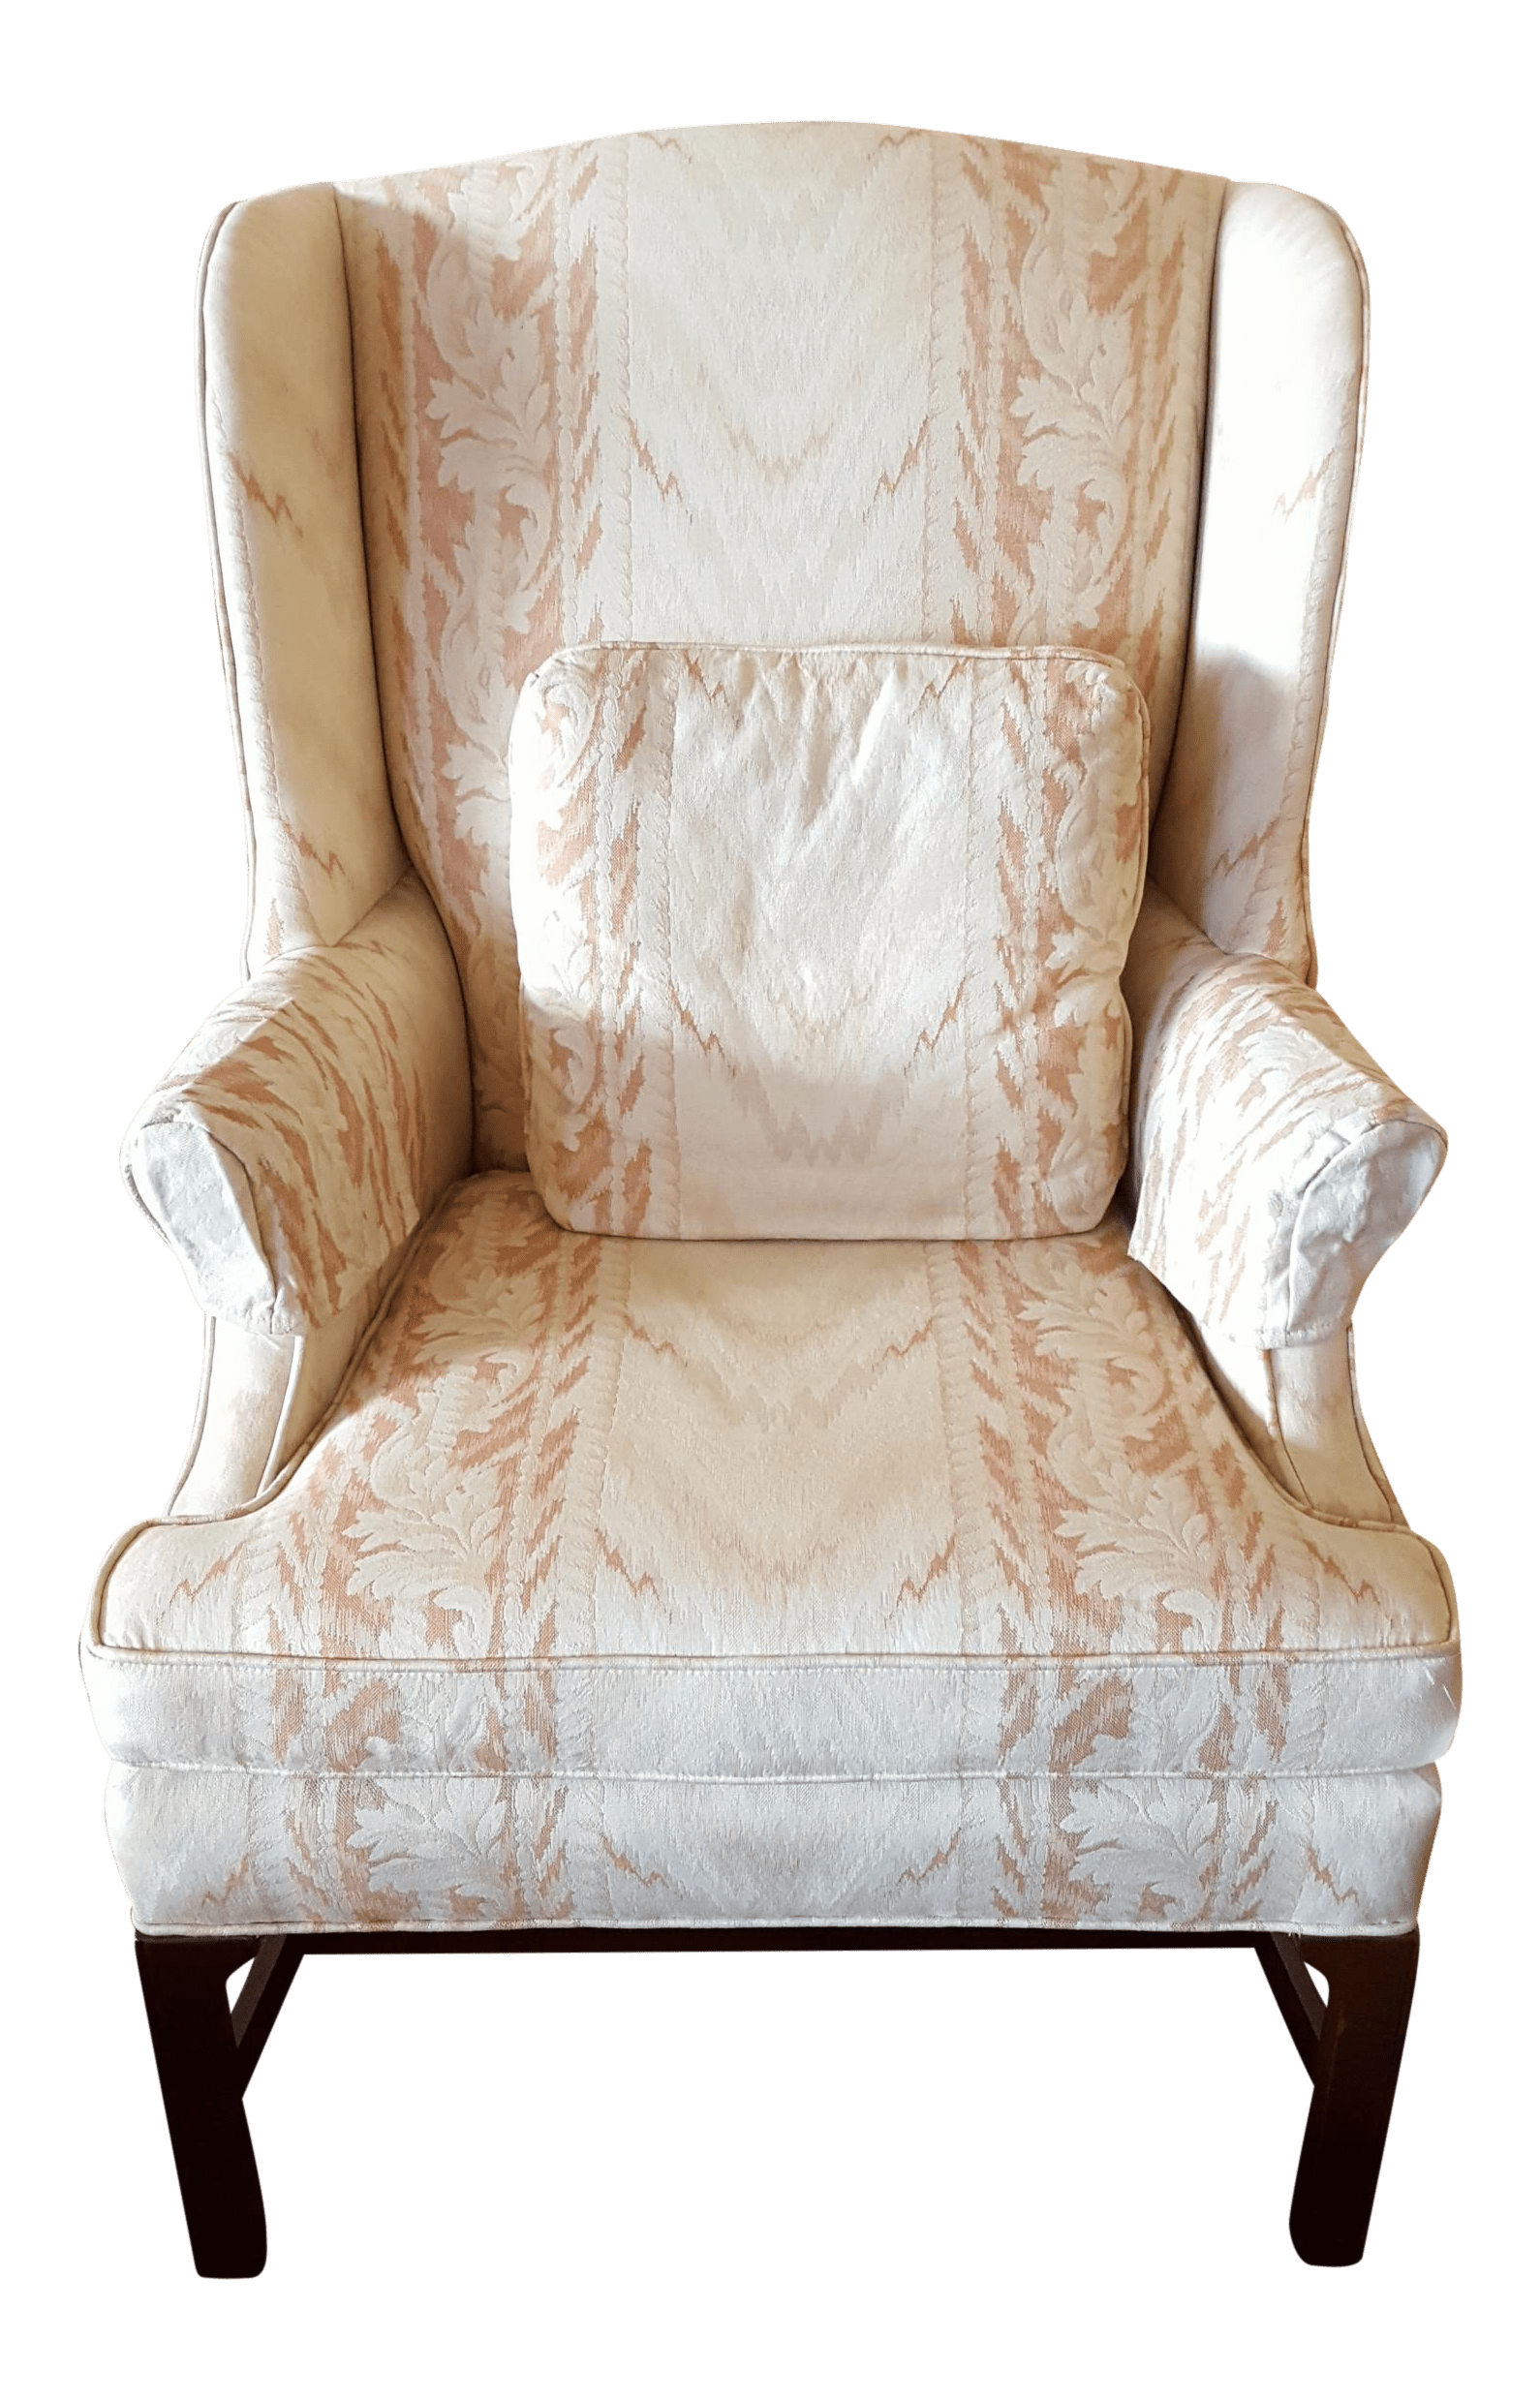 Floral Wingback Chair Flame Stitch Floral Wingback Chair Chairish